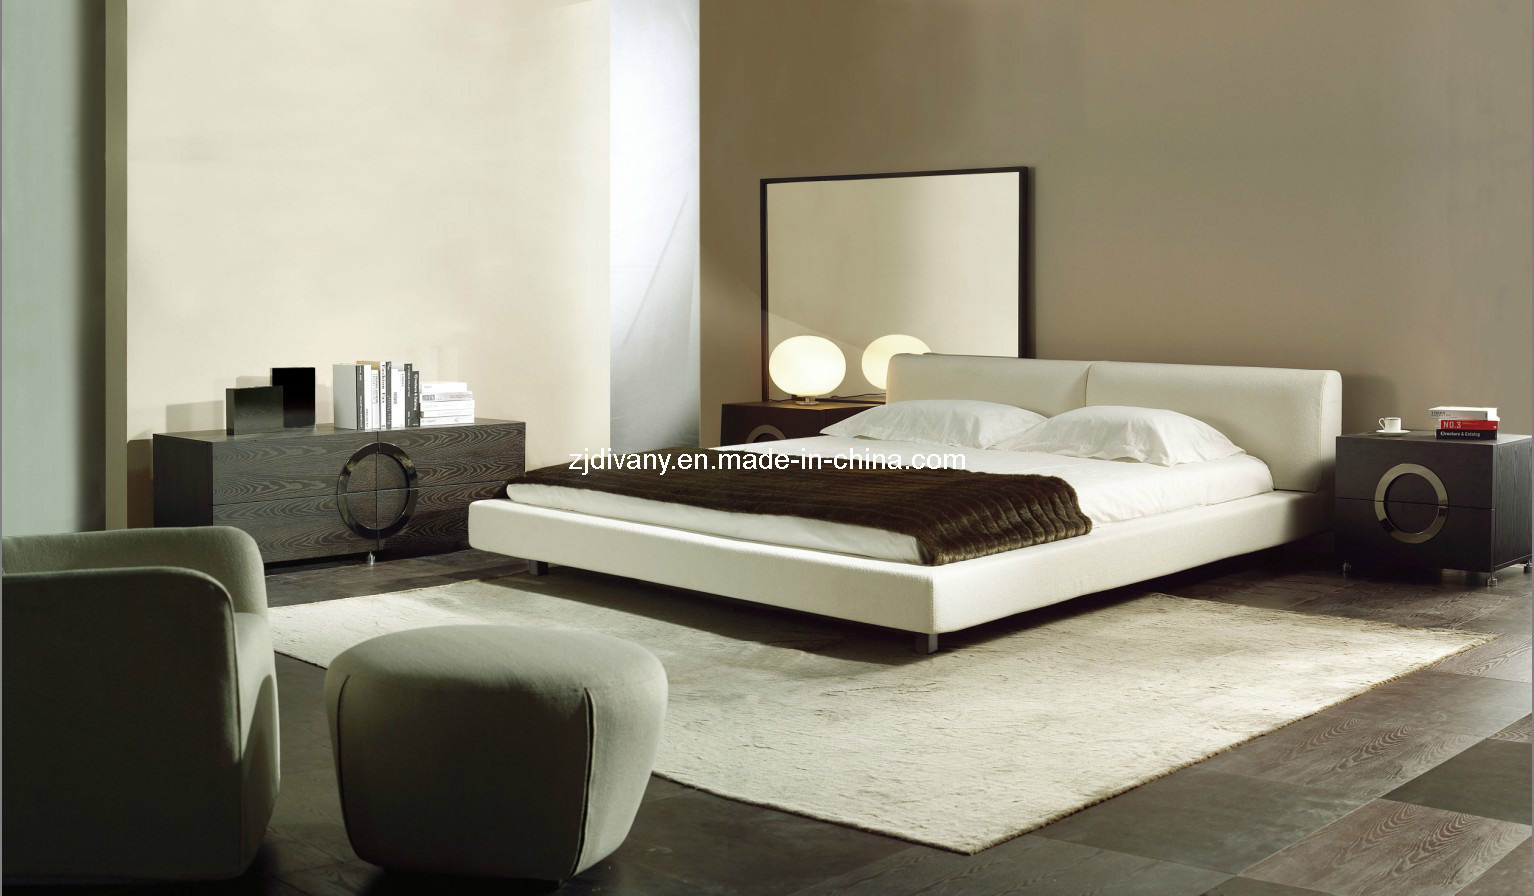 china modern italian style bed set bedroom furniture photos pictures